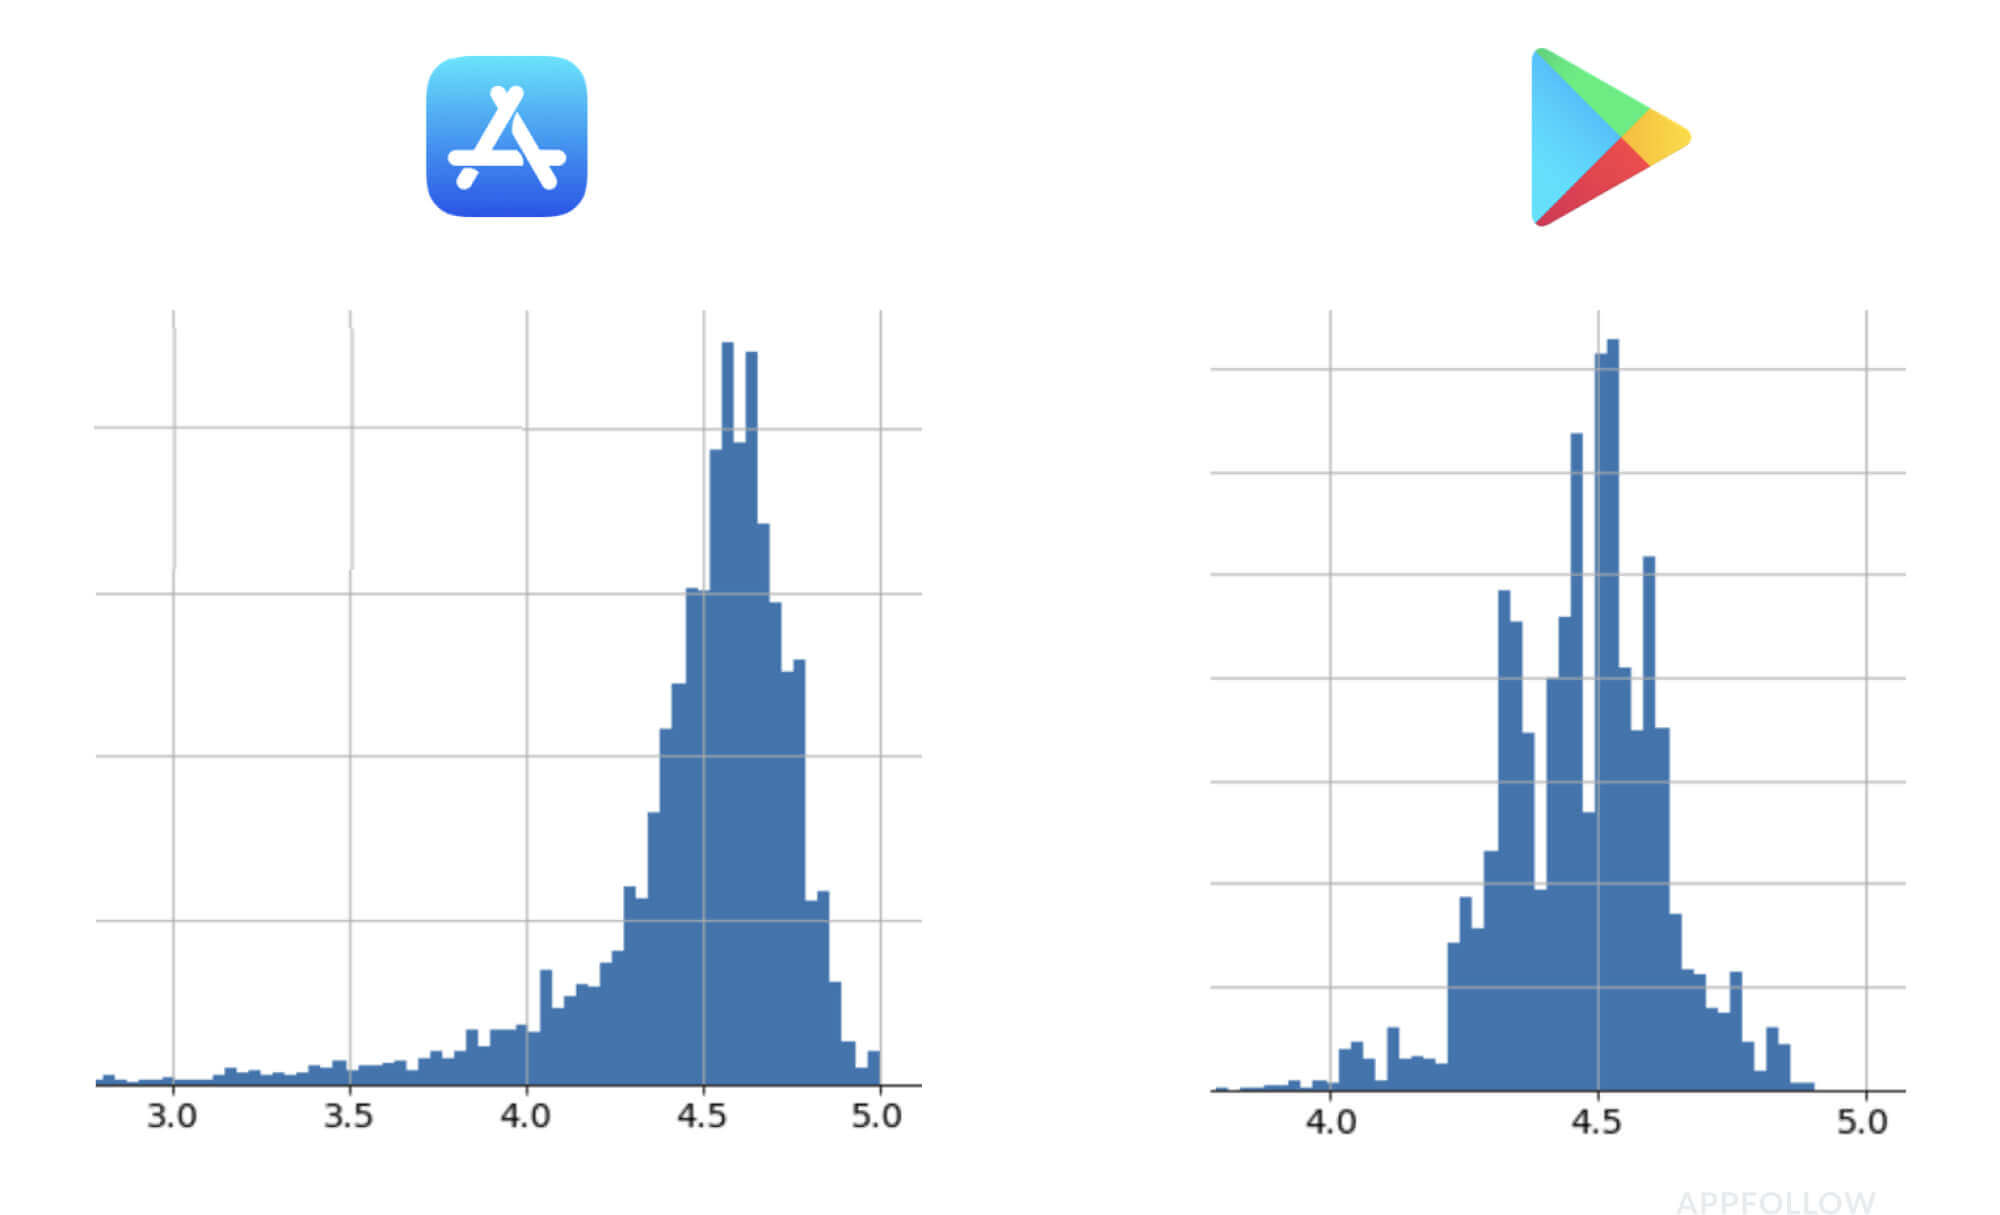 appstore vs playstore